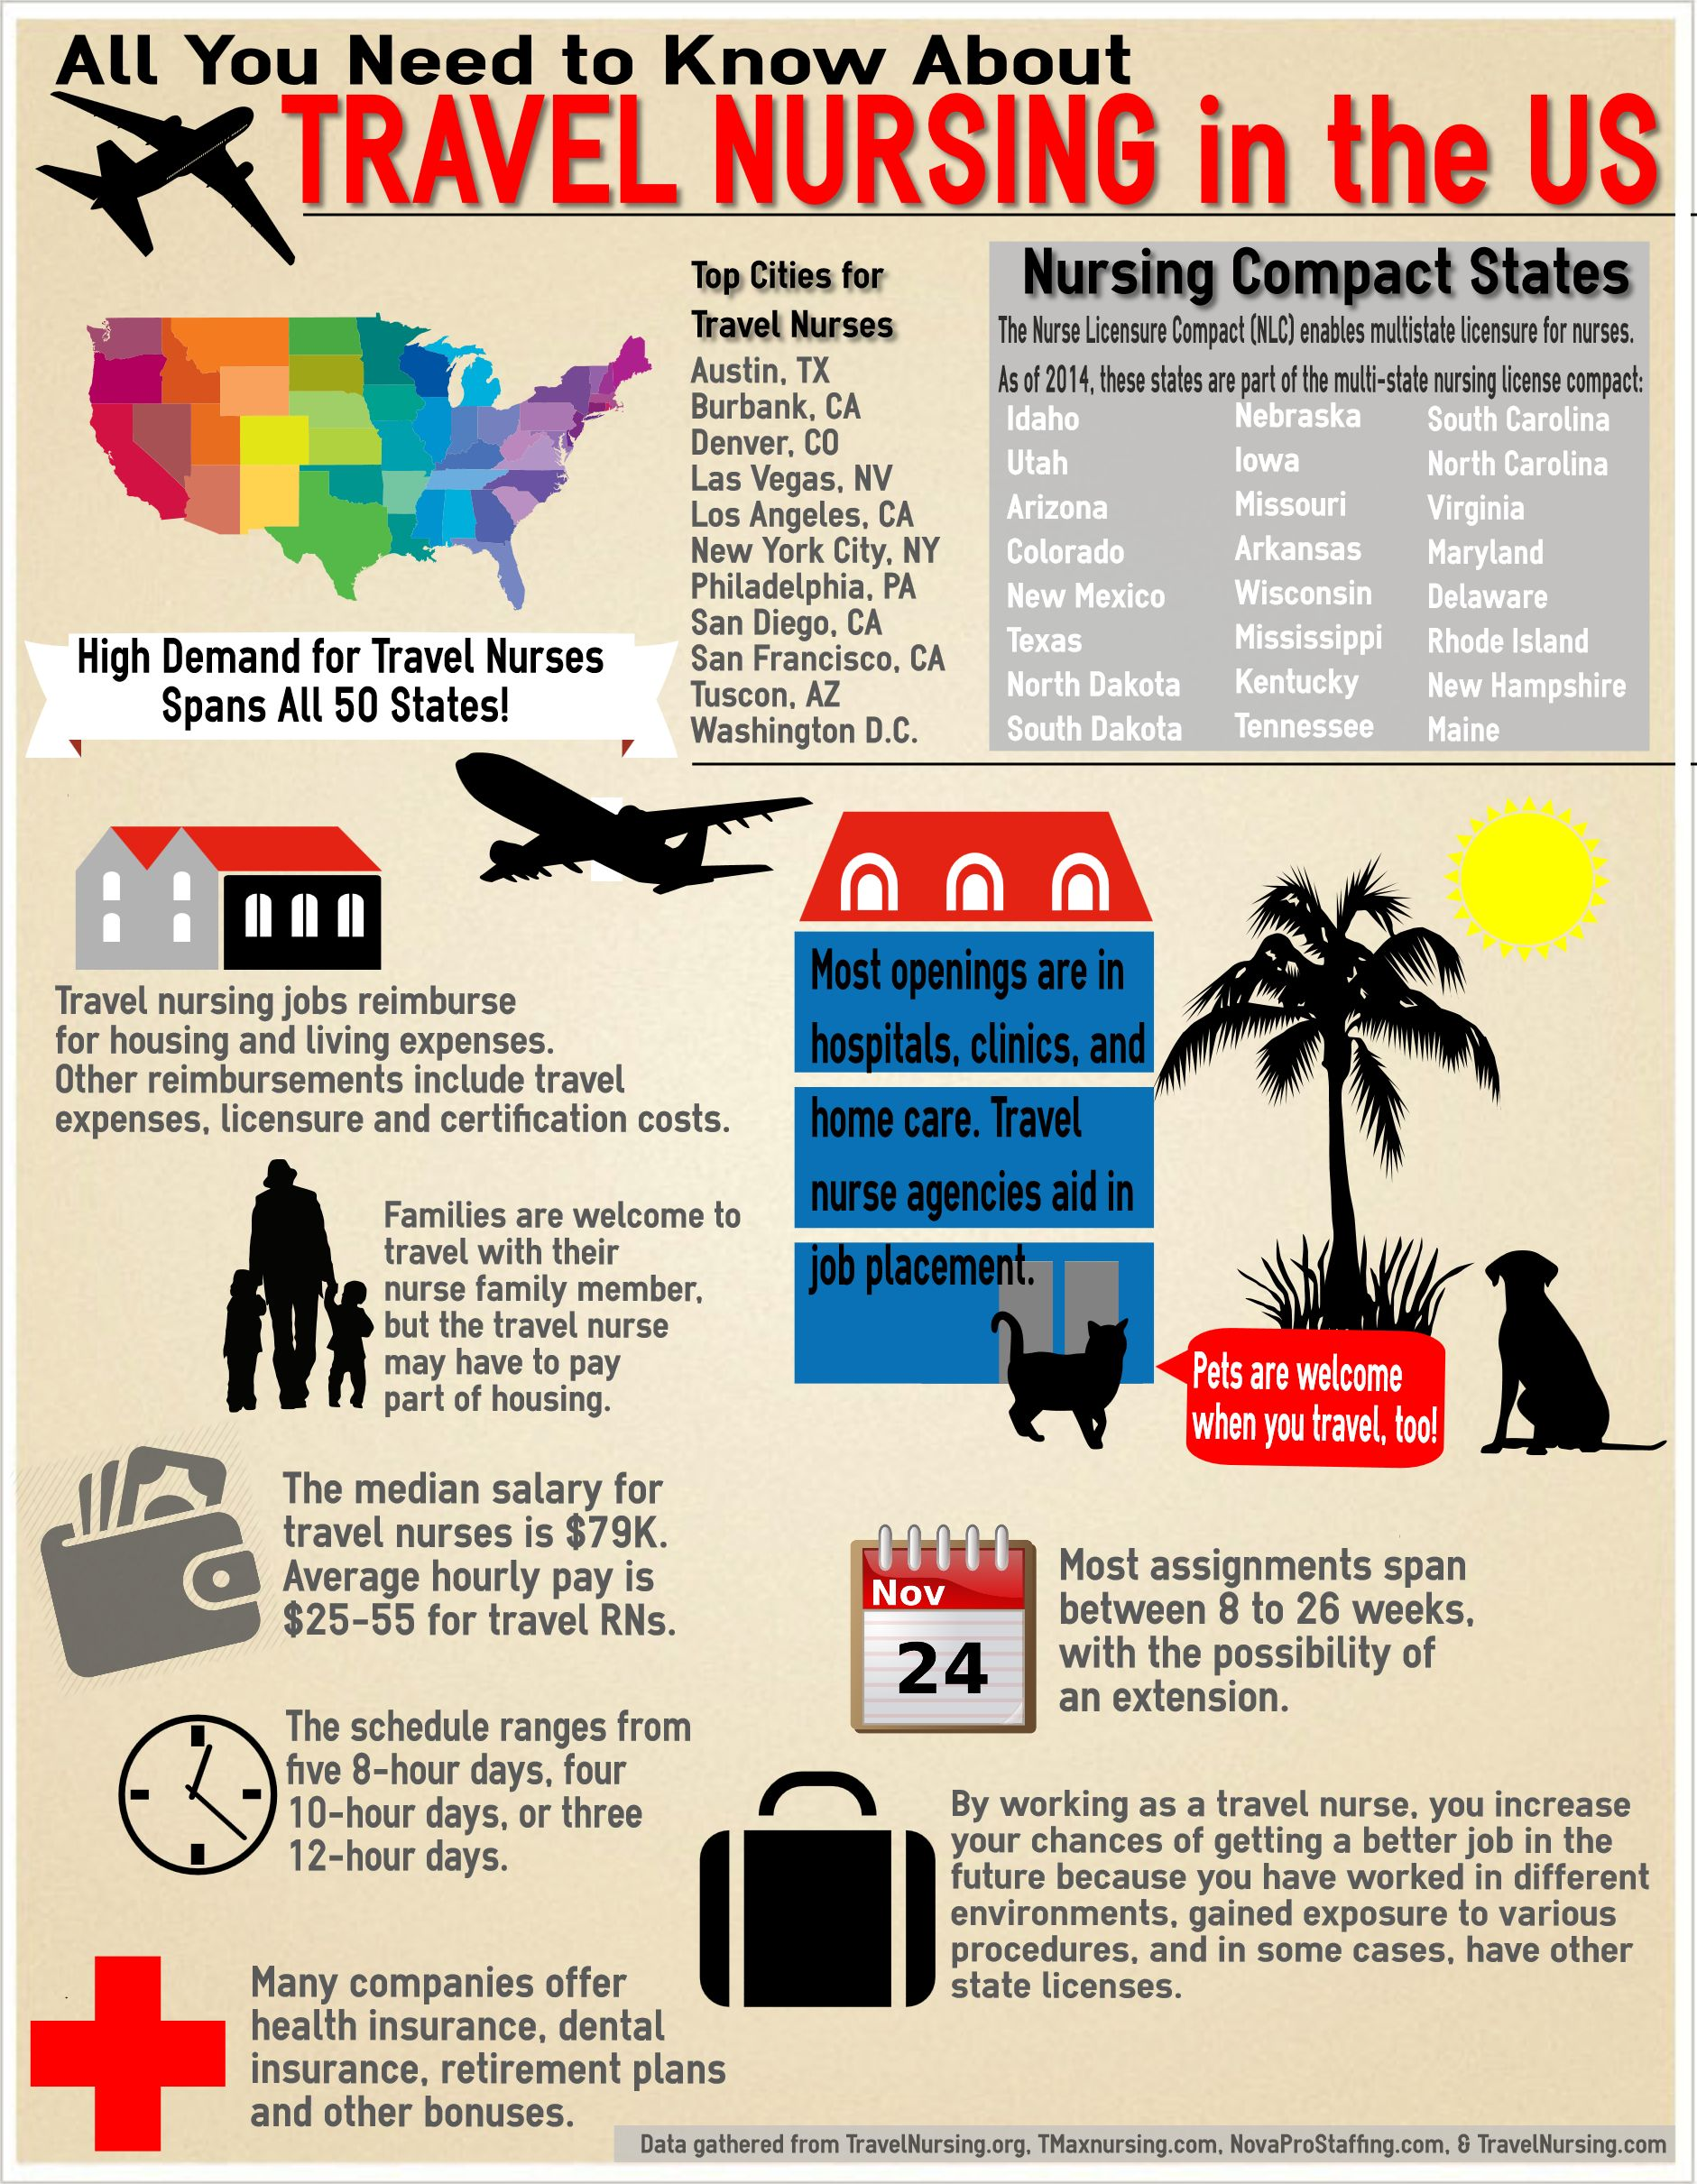 All you need to know about travel nursing in the us